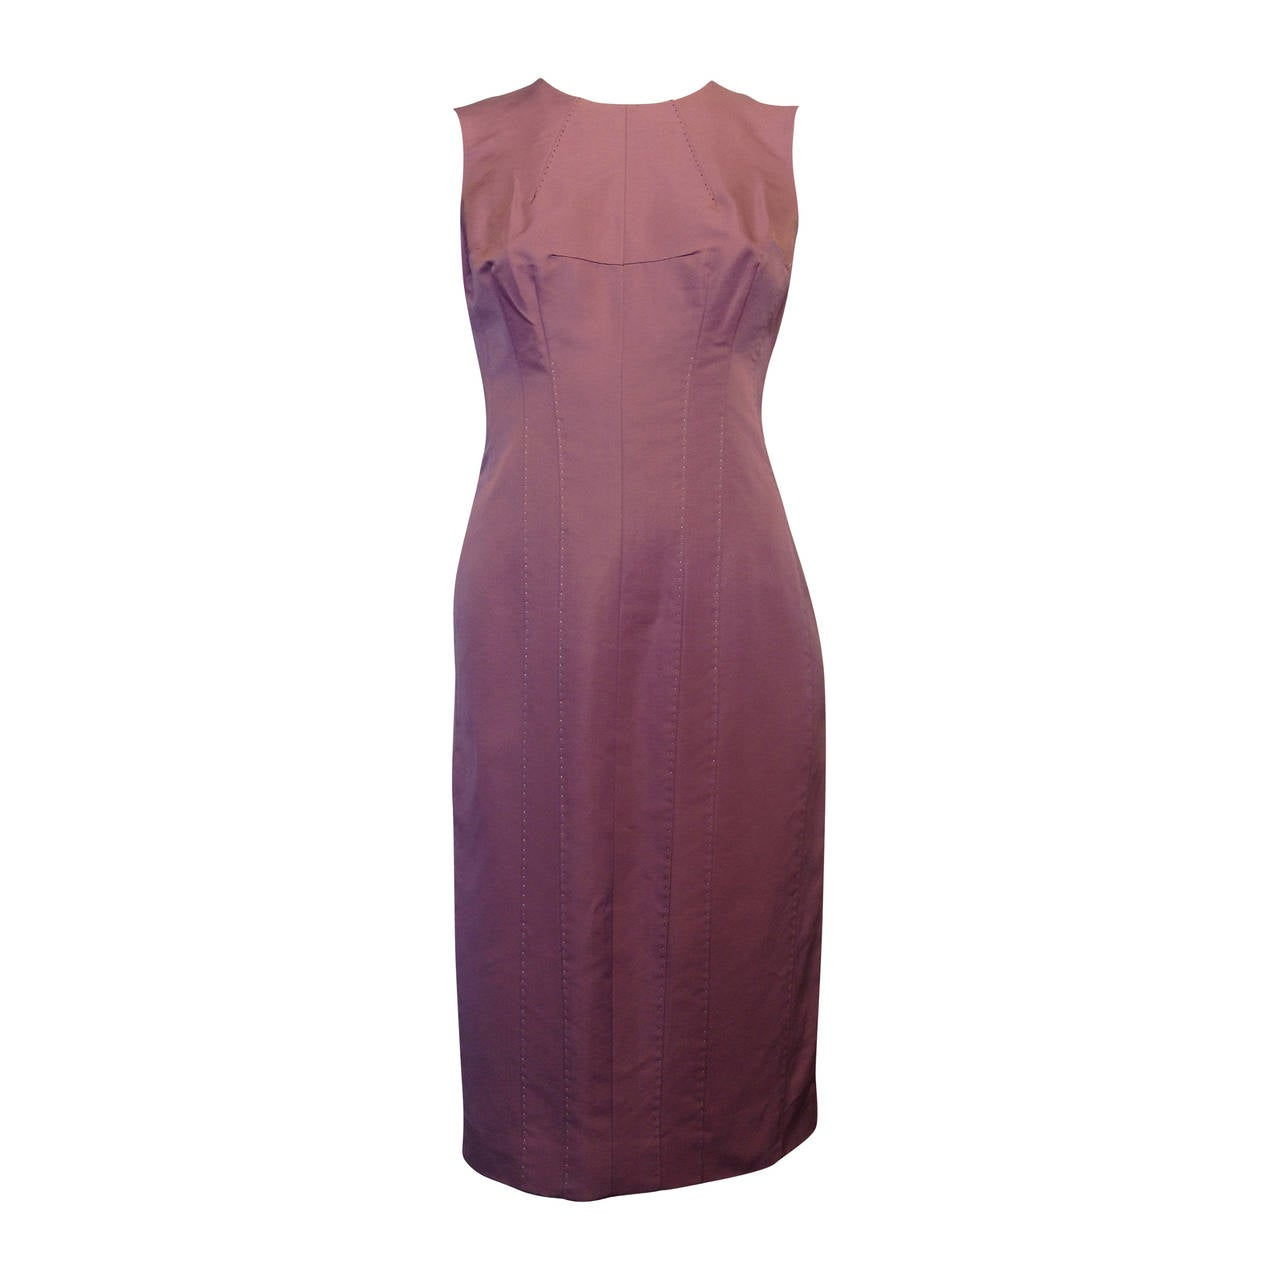 J. Mendel Lilac Sleeveless Shift Dress